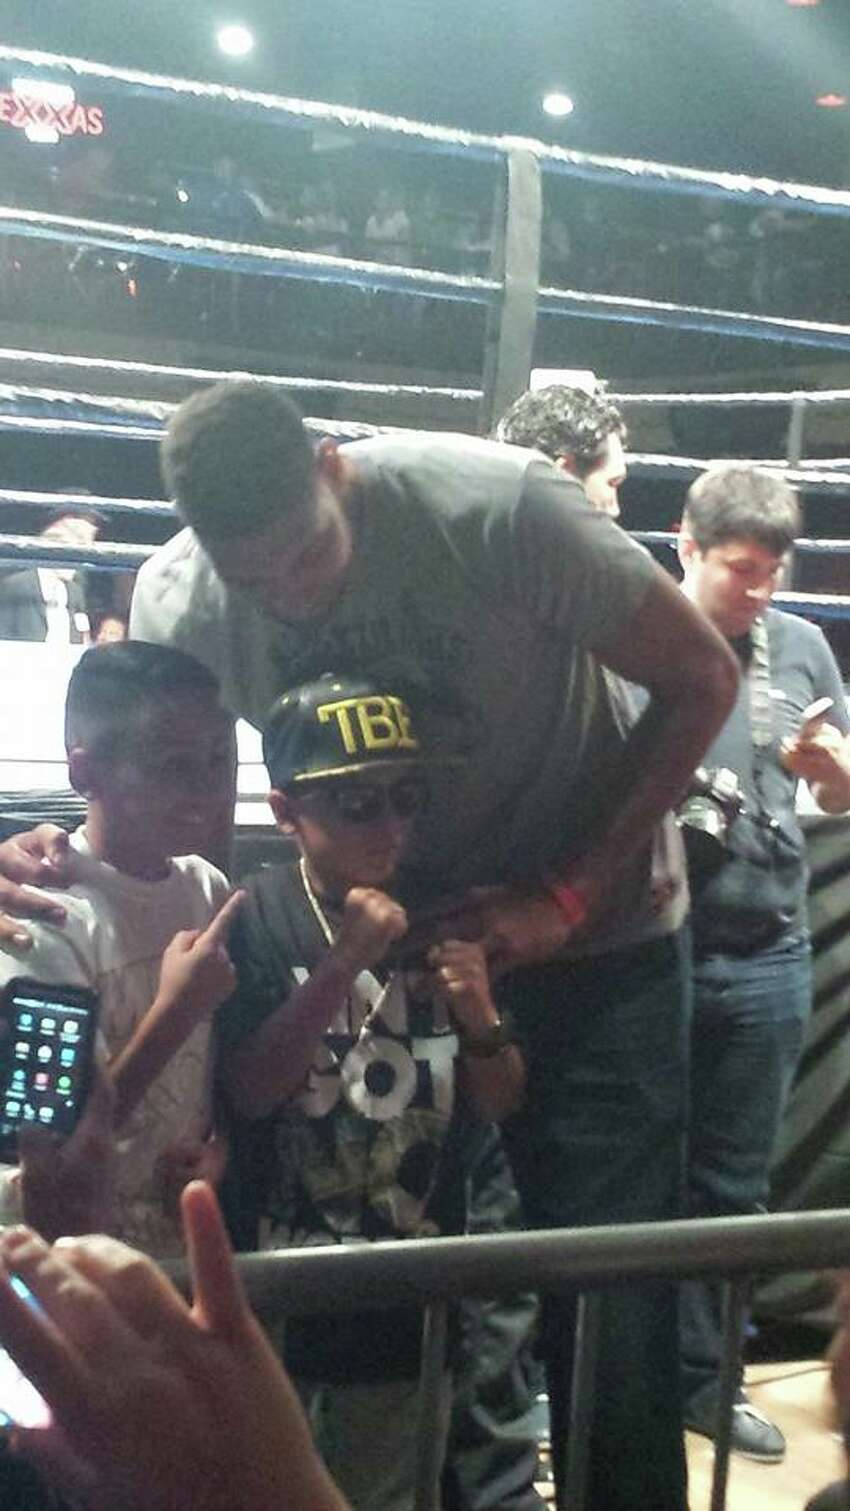 He did take time to pose for photos with young fans who were sitting near the ring, Vega-Hale said.